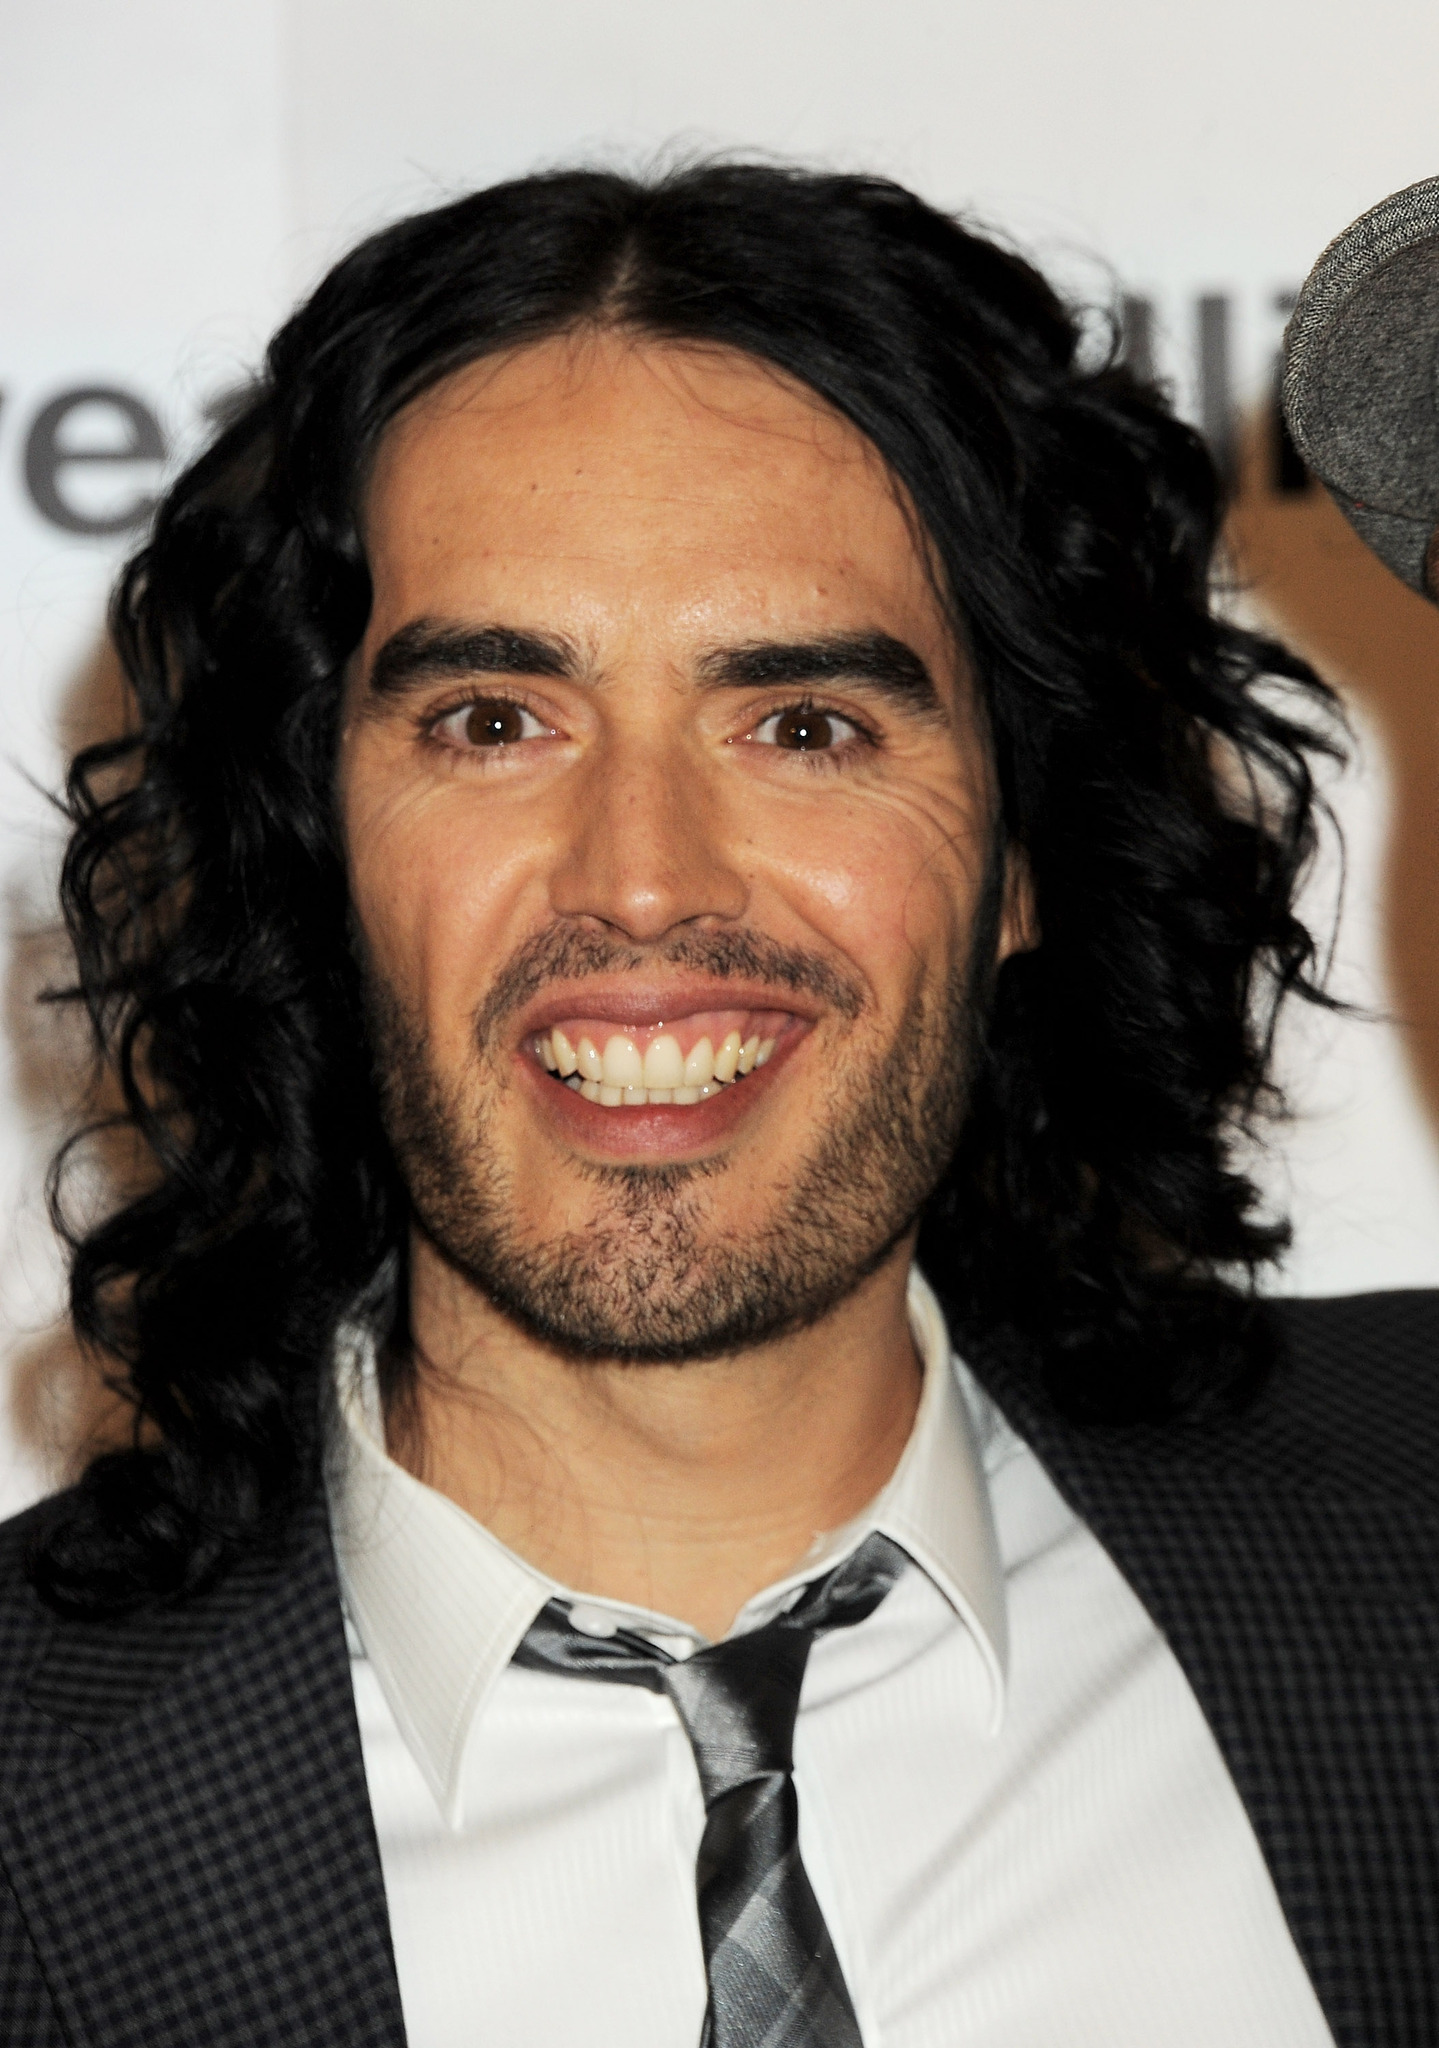 Who is russell brand dating 2019 best